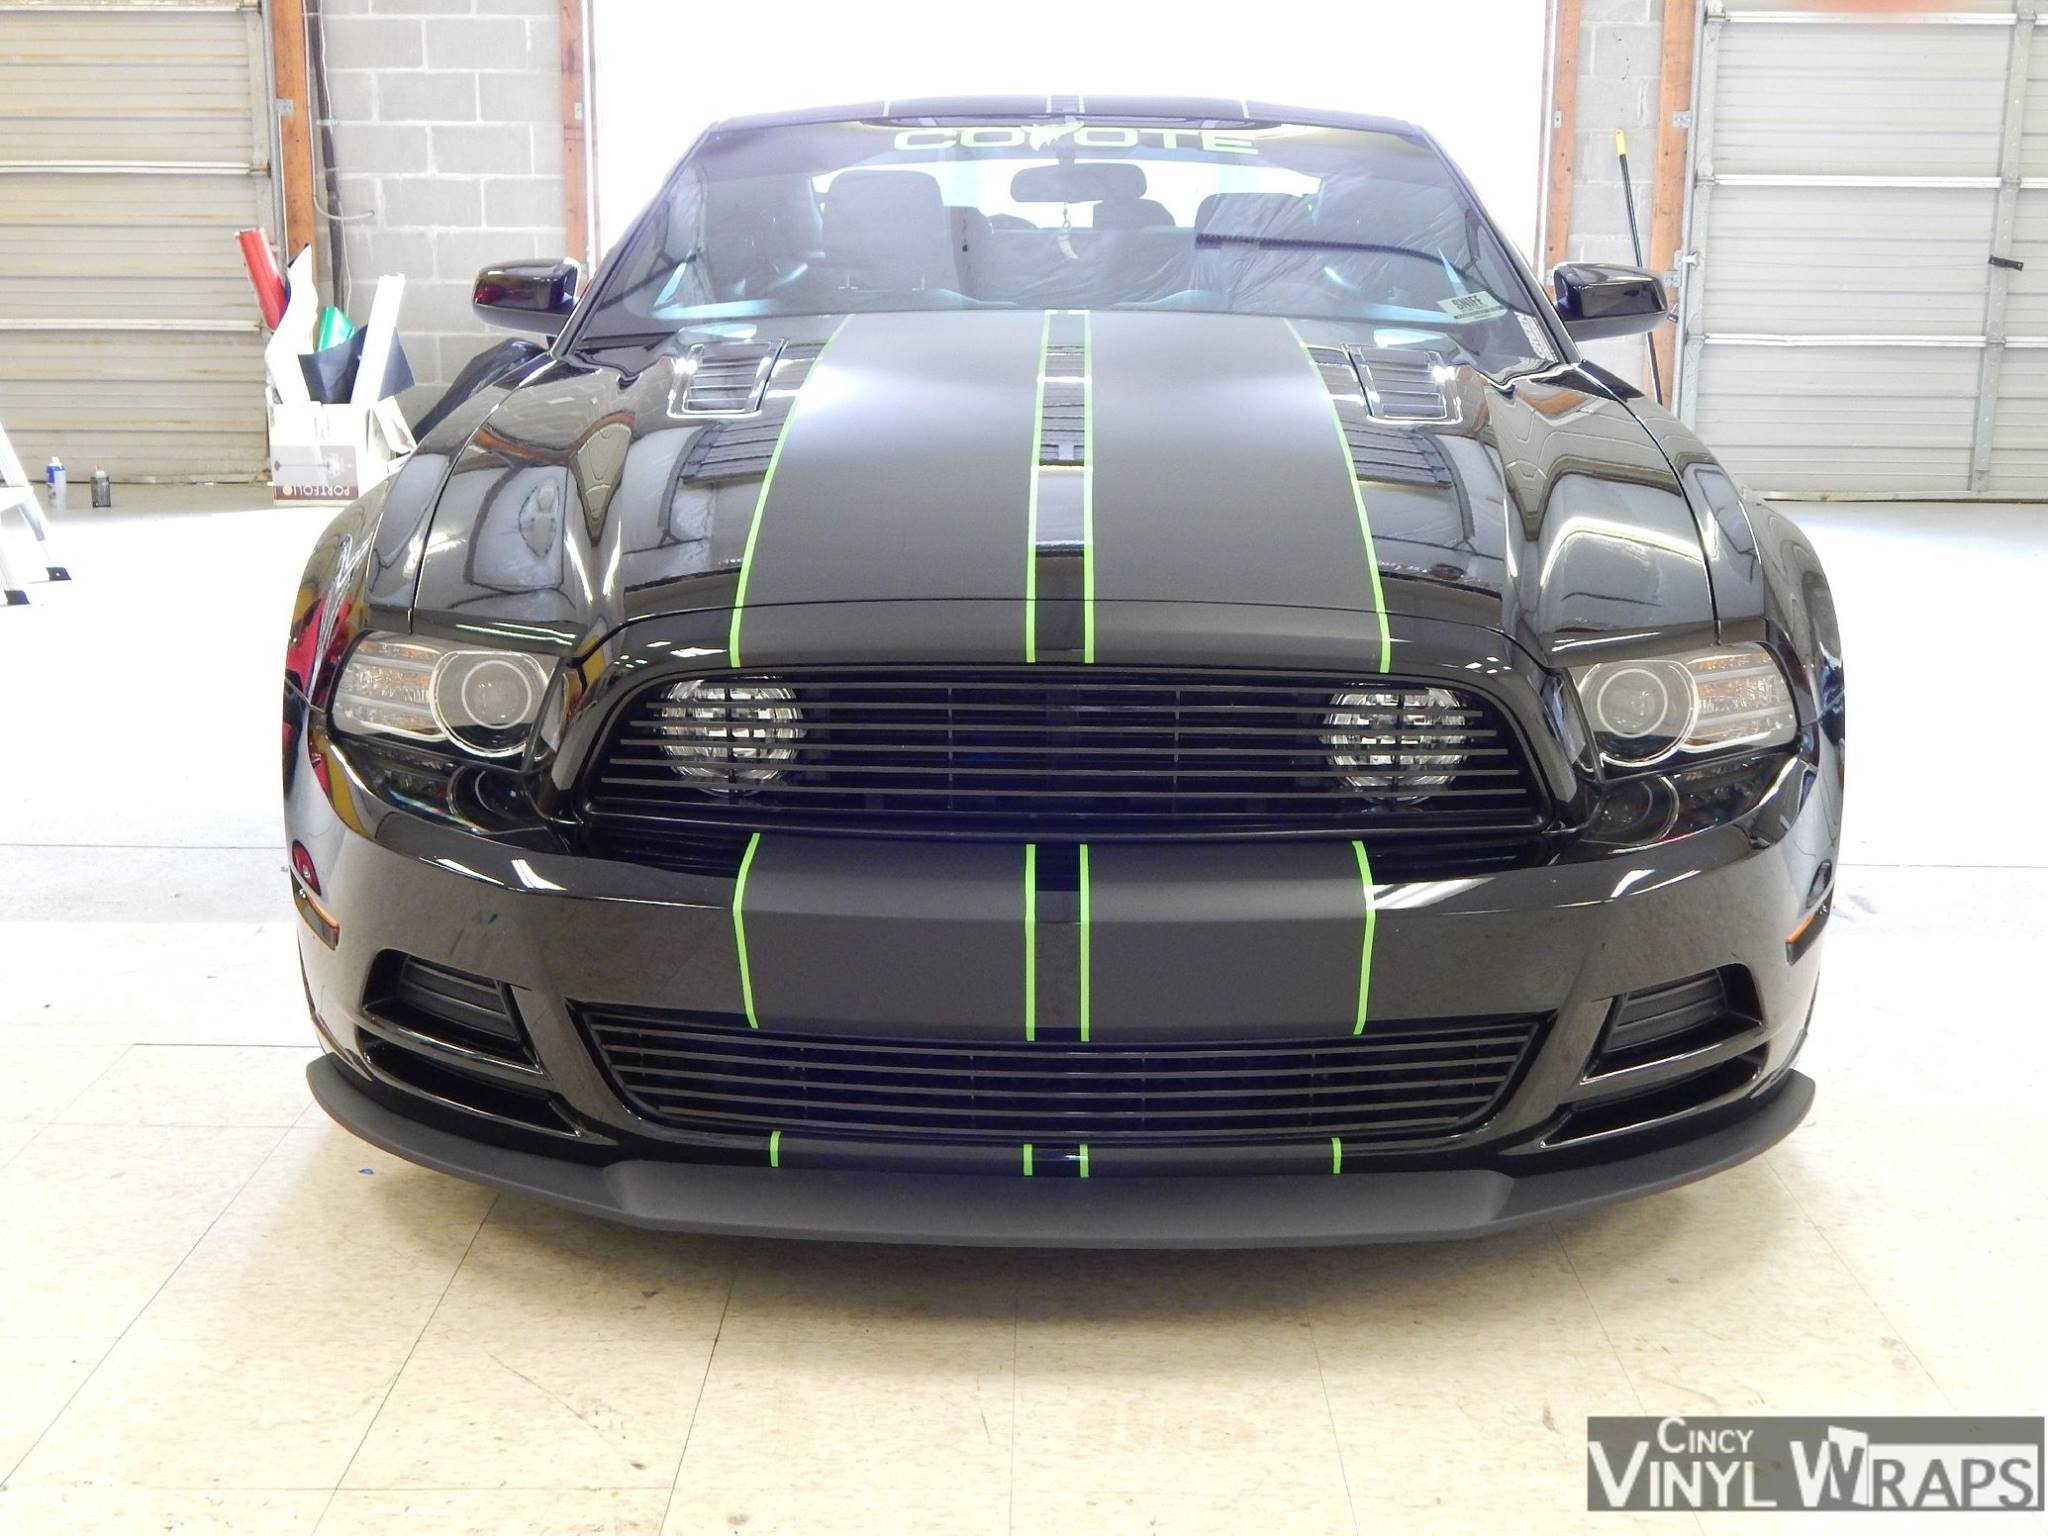 Cincy Vinyl Wraps Mustang Dual Stripes (